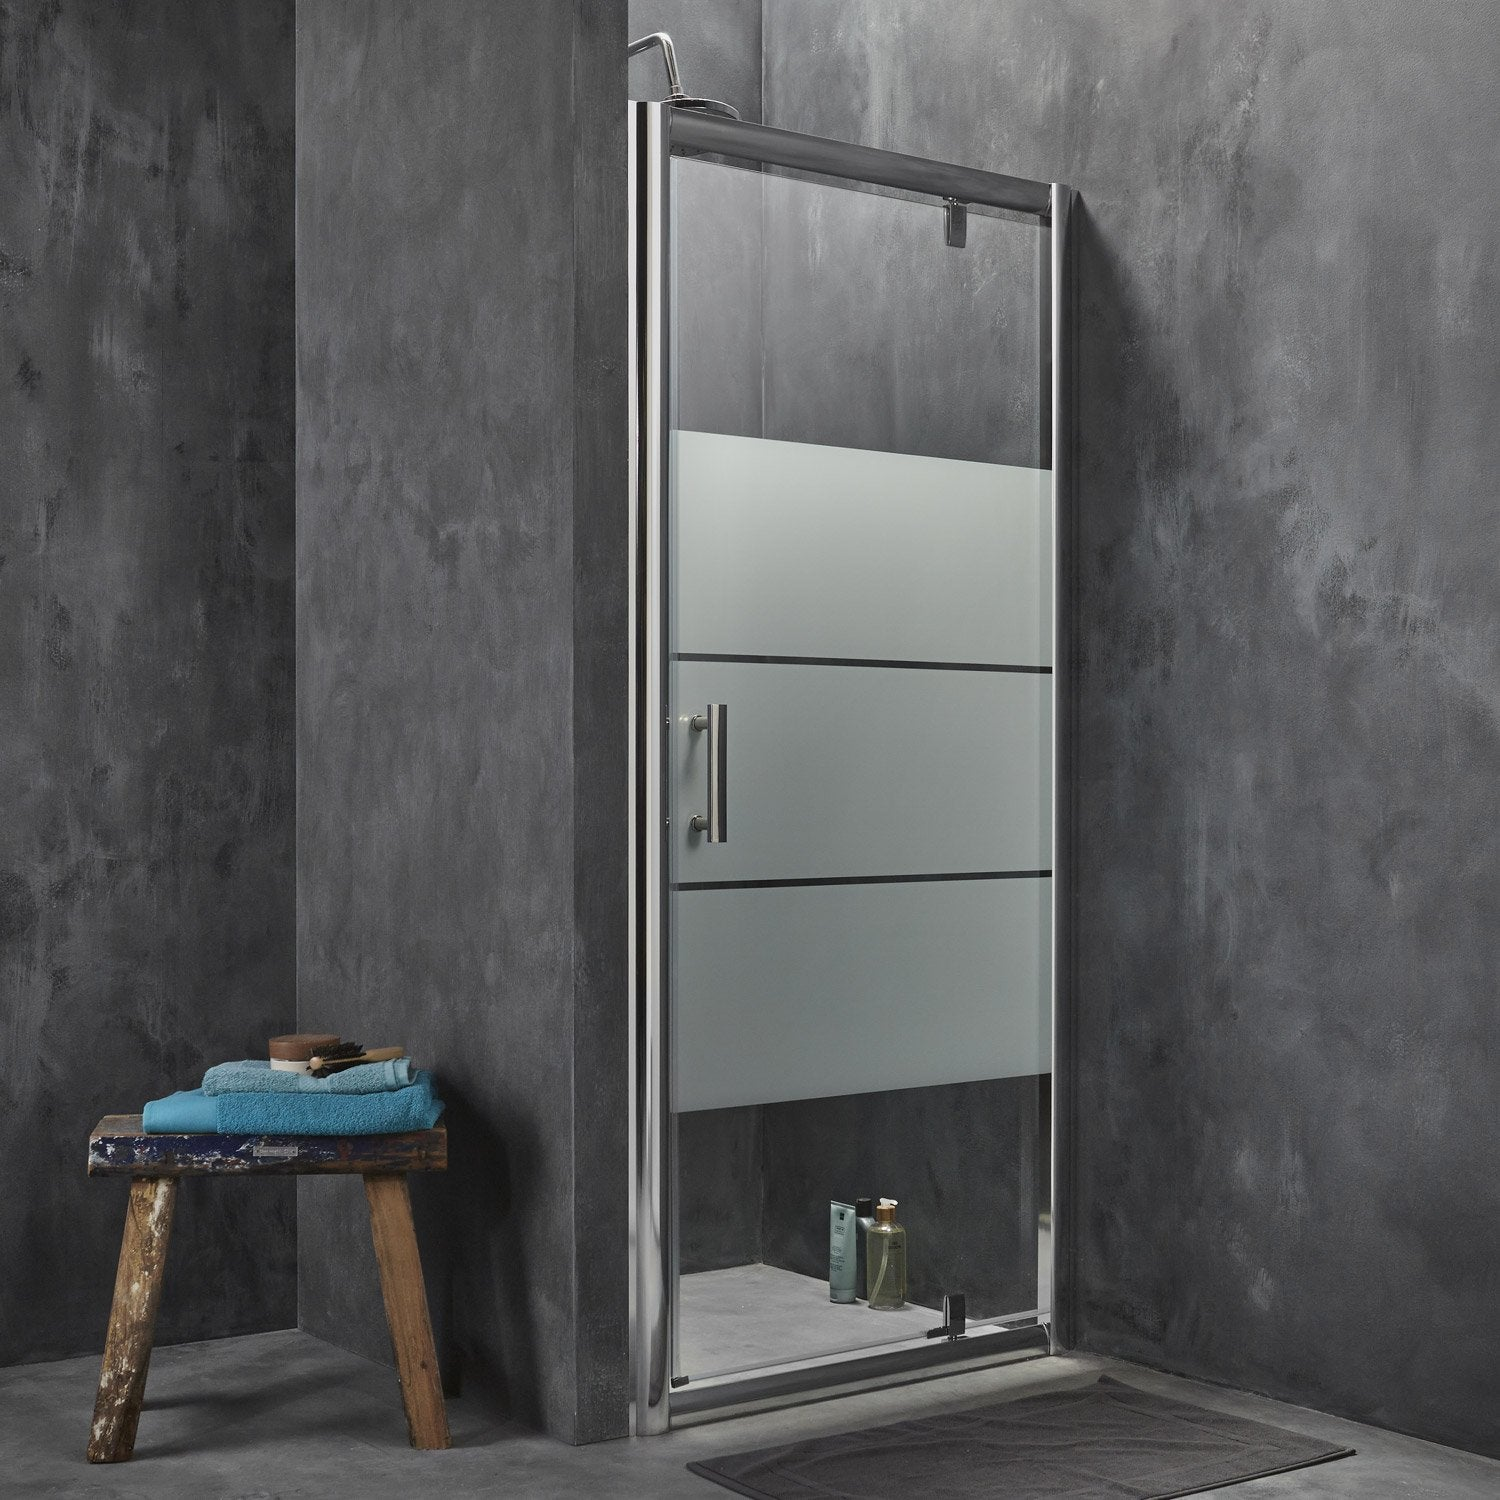 Porte de douche pivotante optima2 leroy merlin for Prix douche italienne leroy merlin